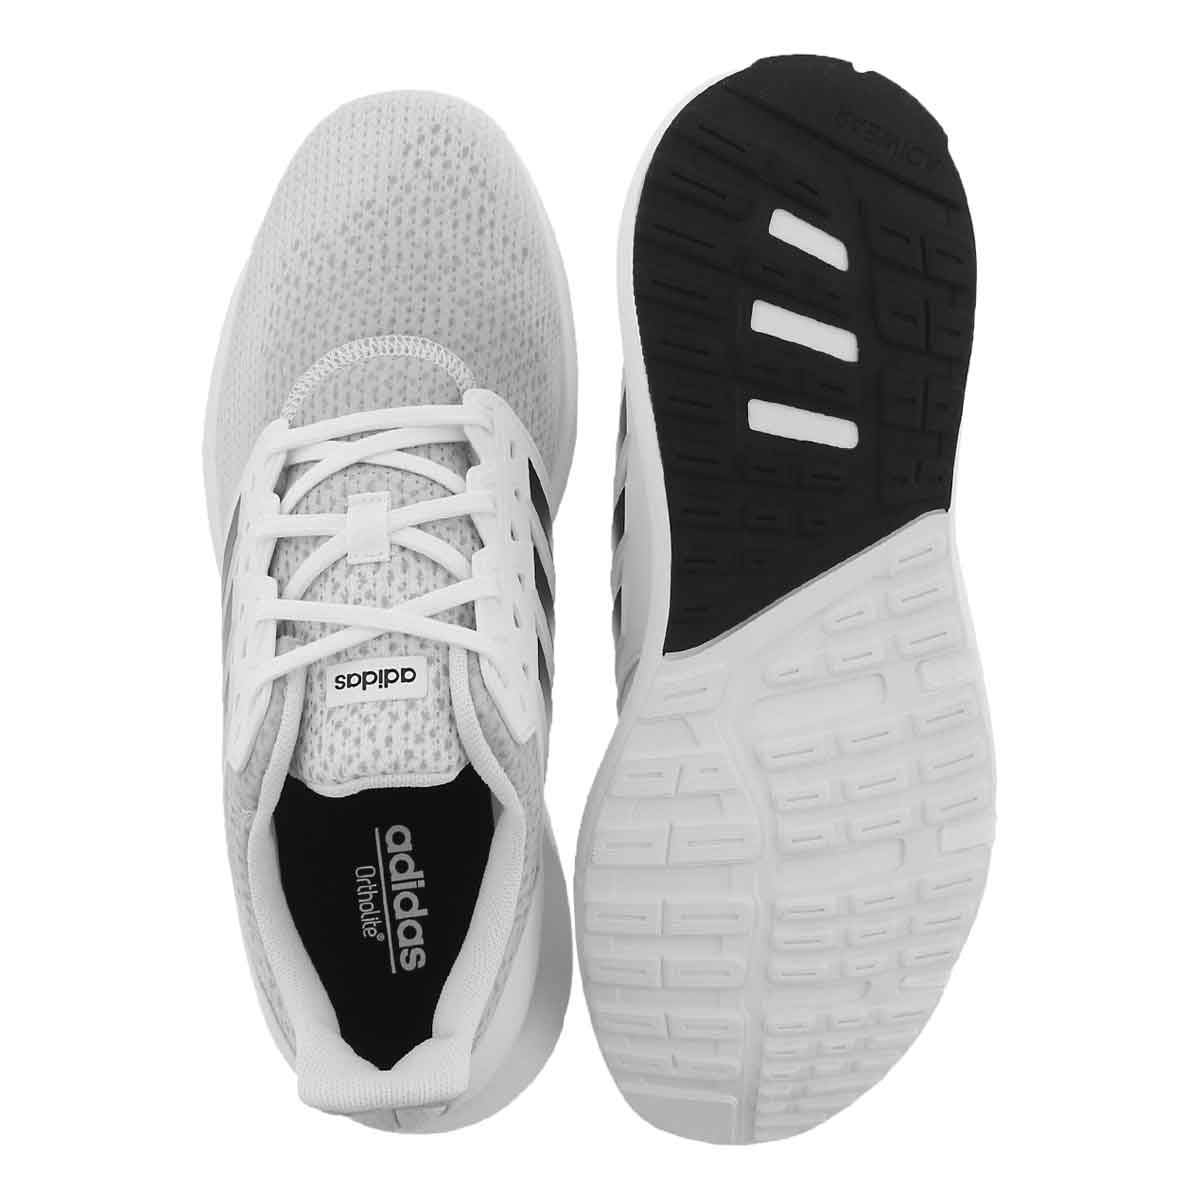 Mns Solyx wht/blk/gry running shoe